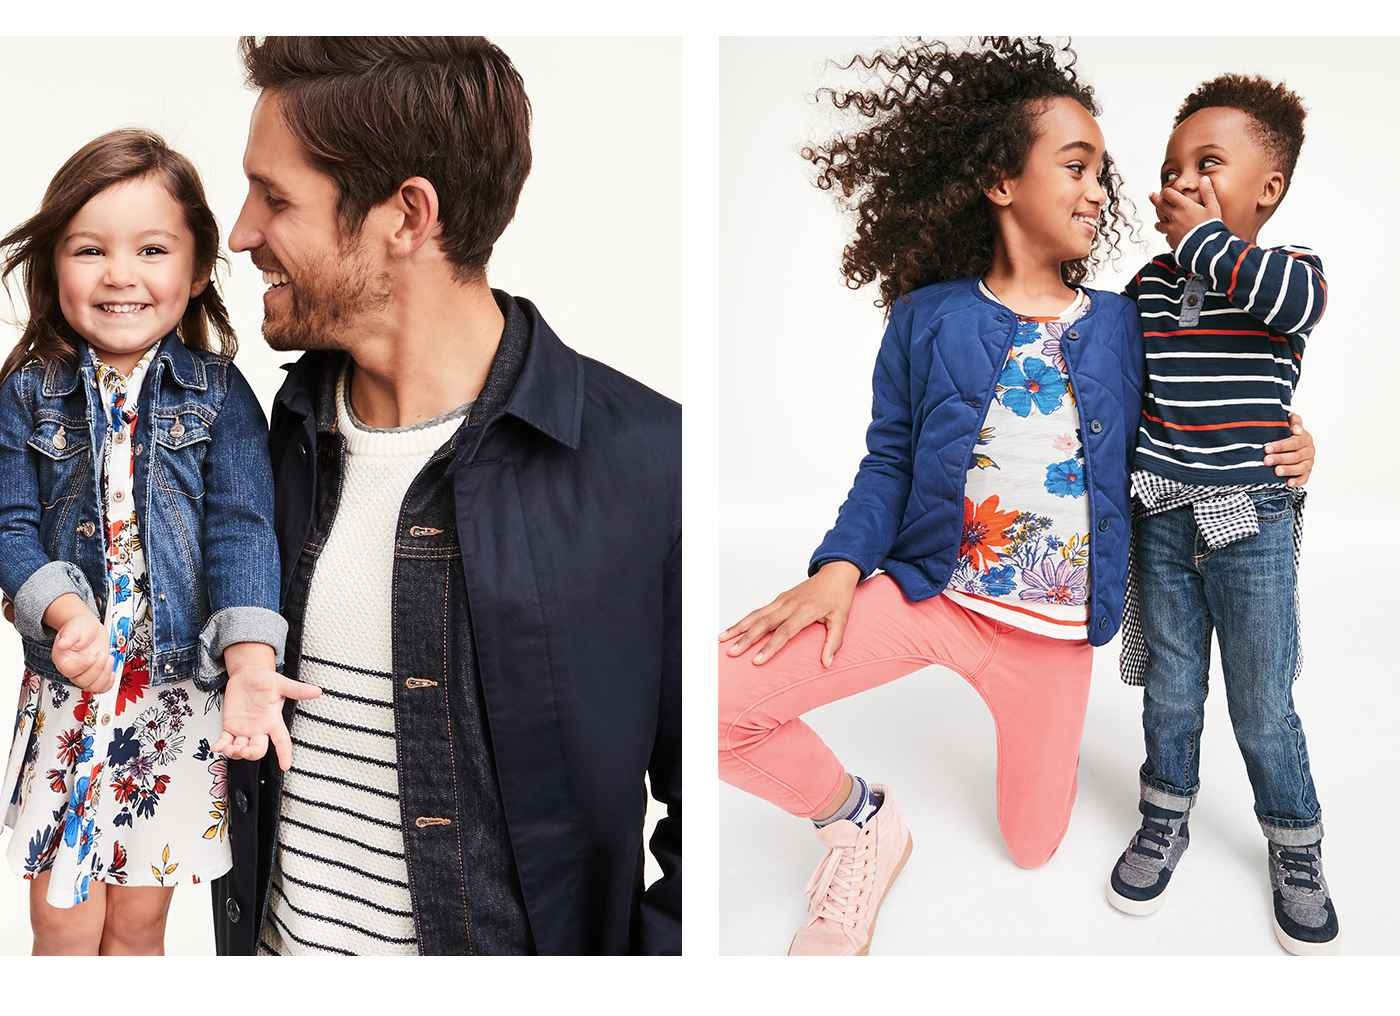 Bargain - Up to 50% Off + 25% Off - Style Faves Sale @ Old Navy